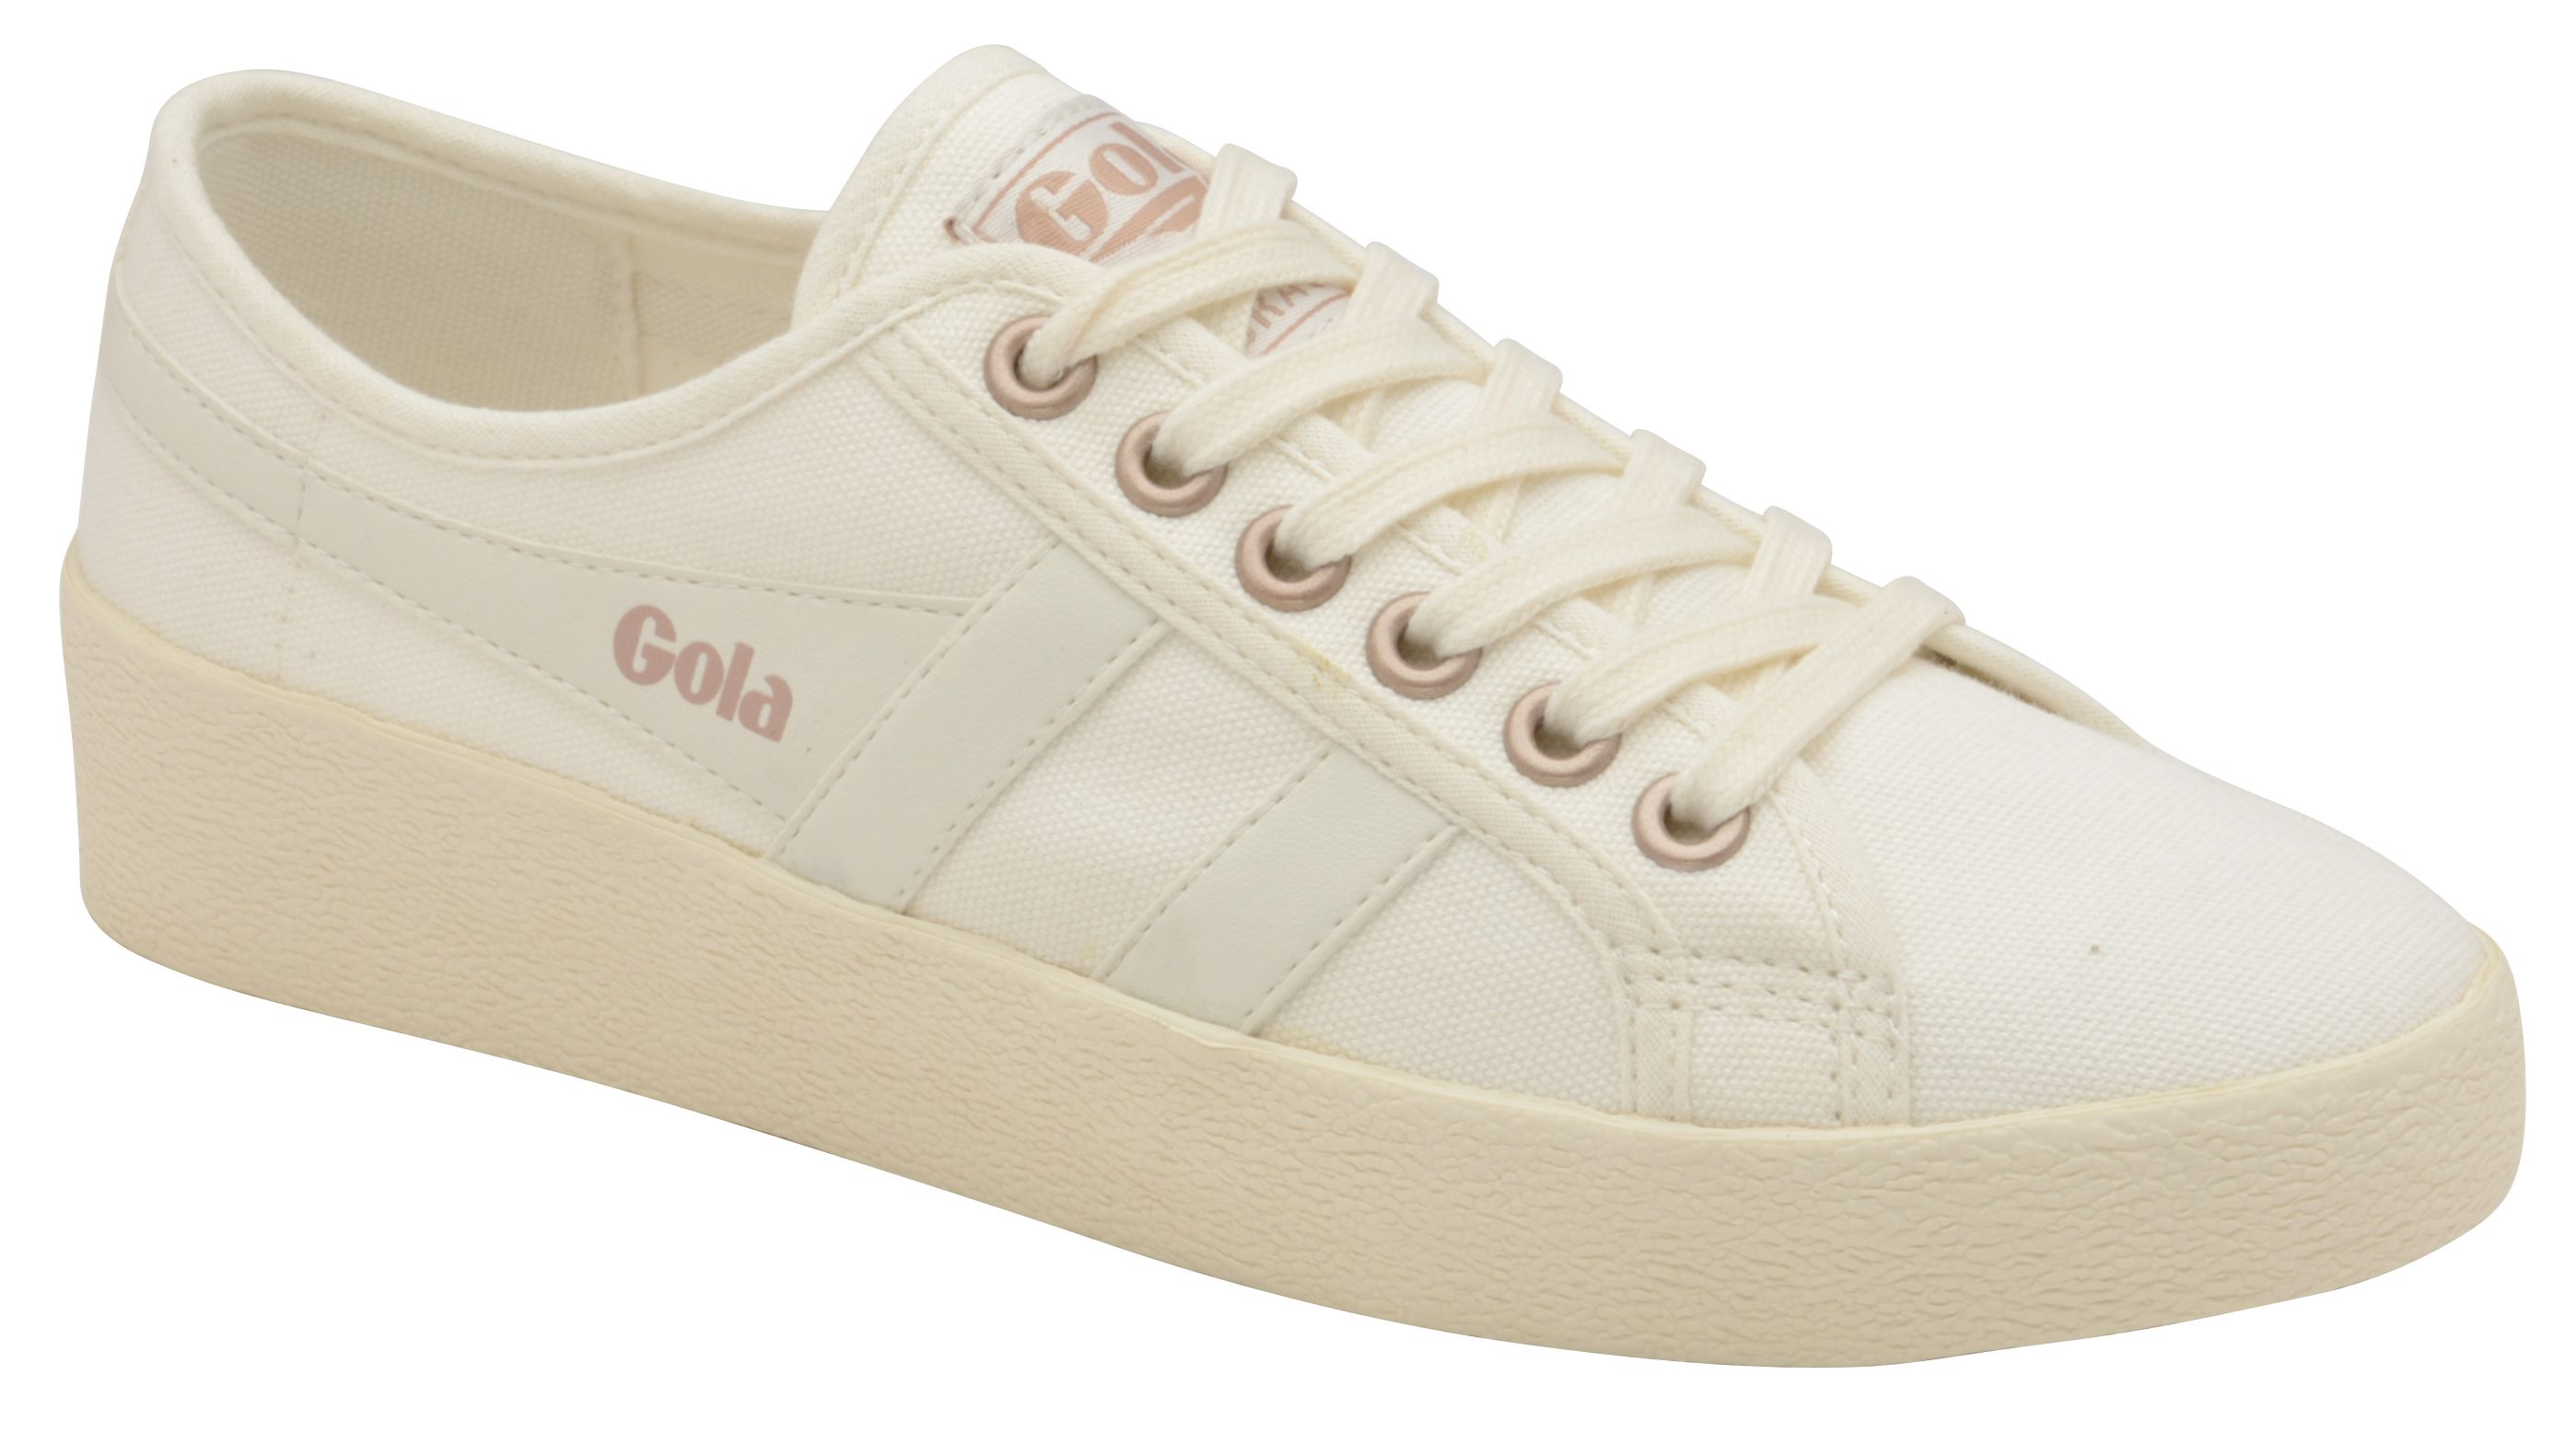 Gola Grace Lace Up Trainers, Off White